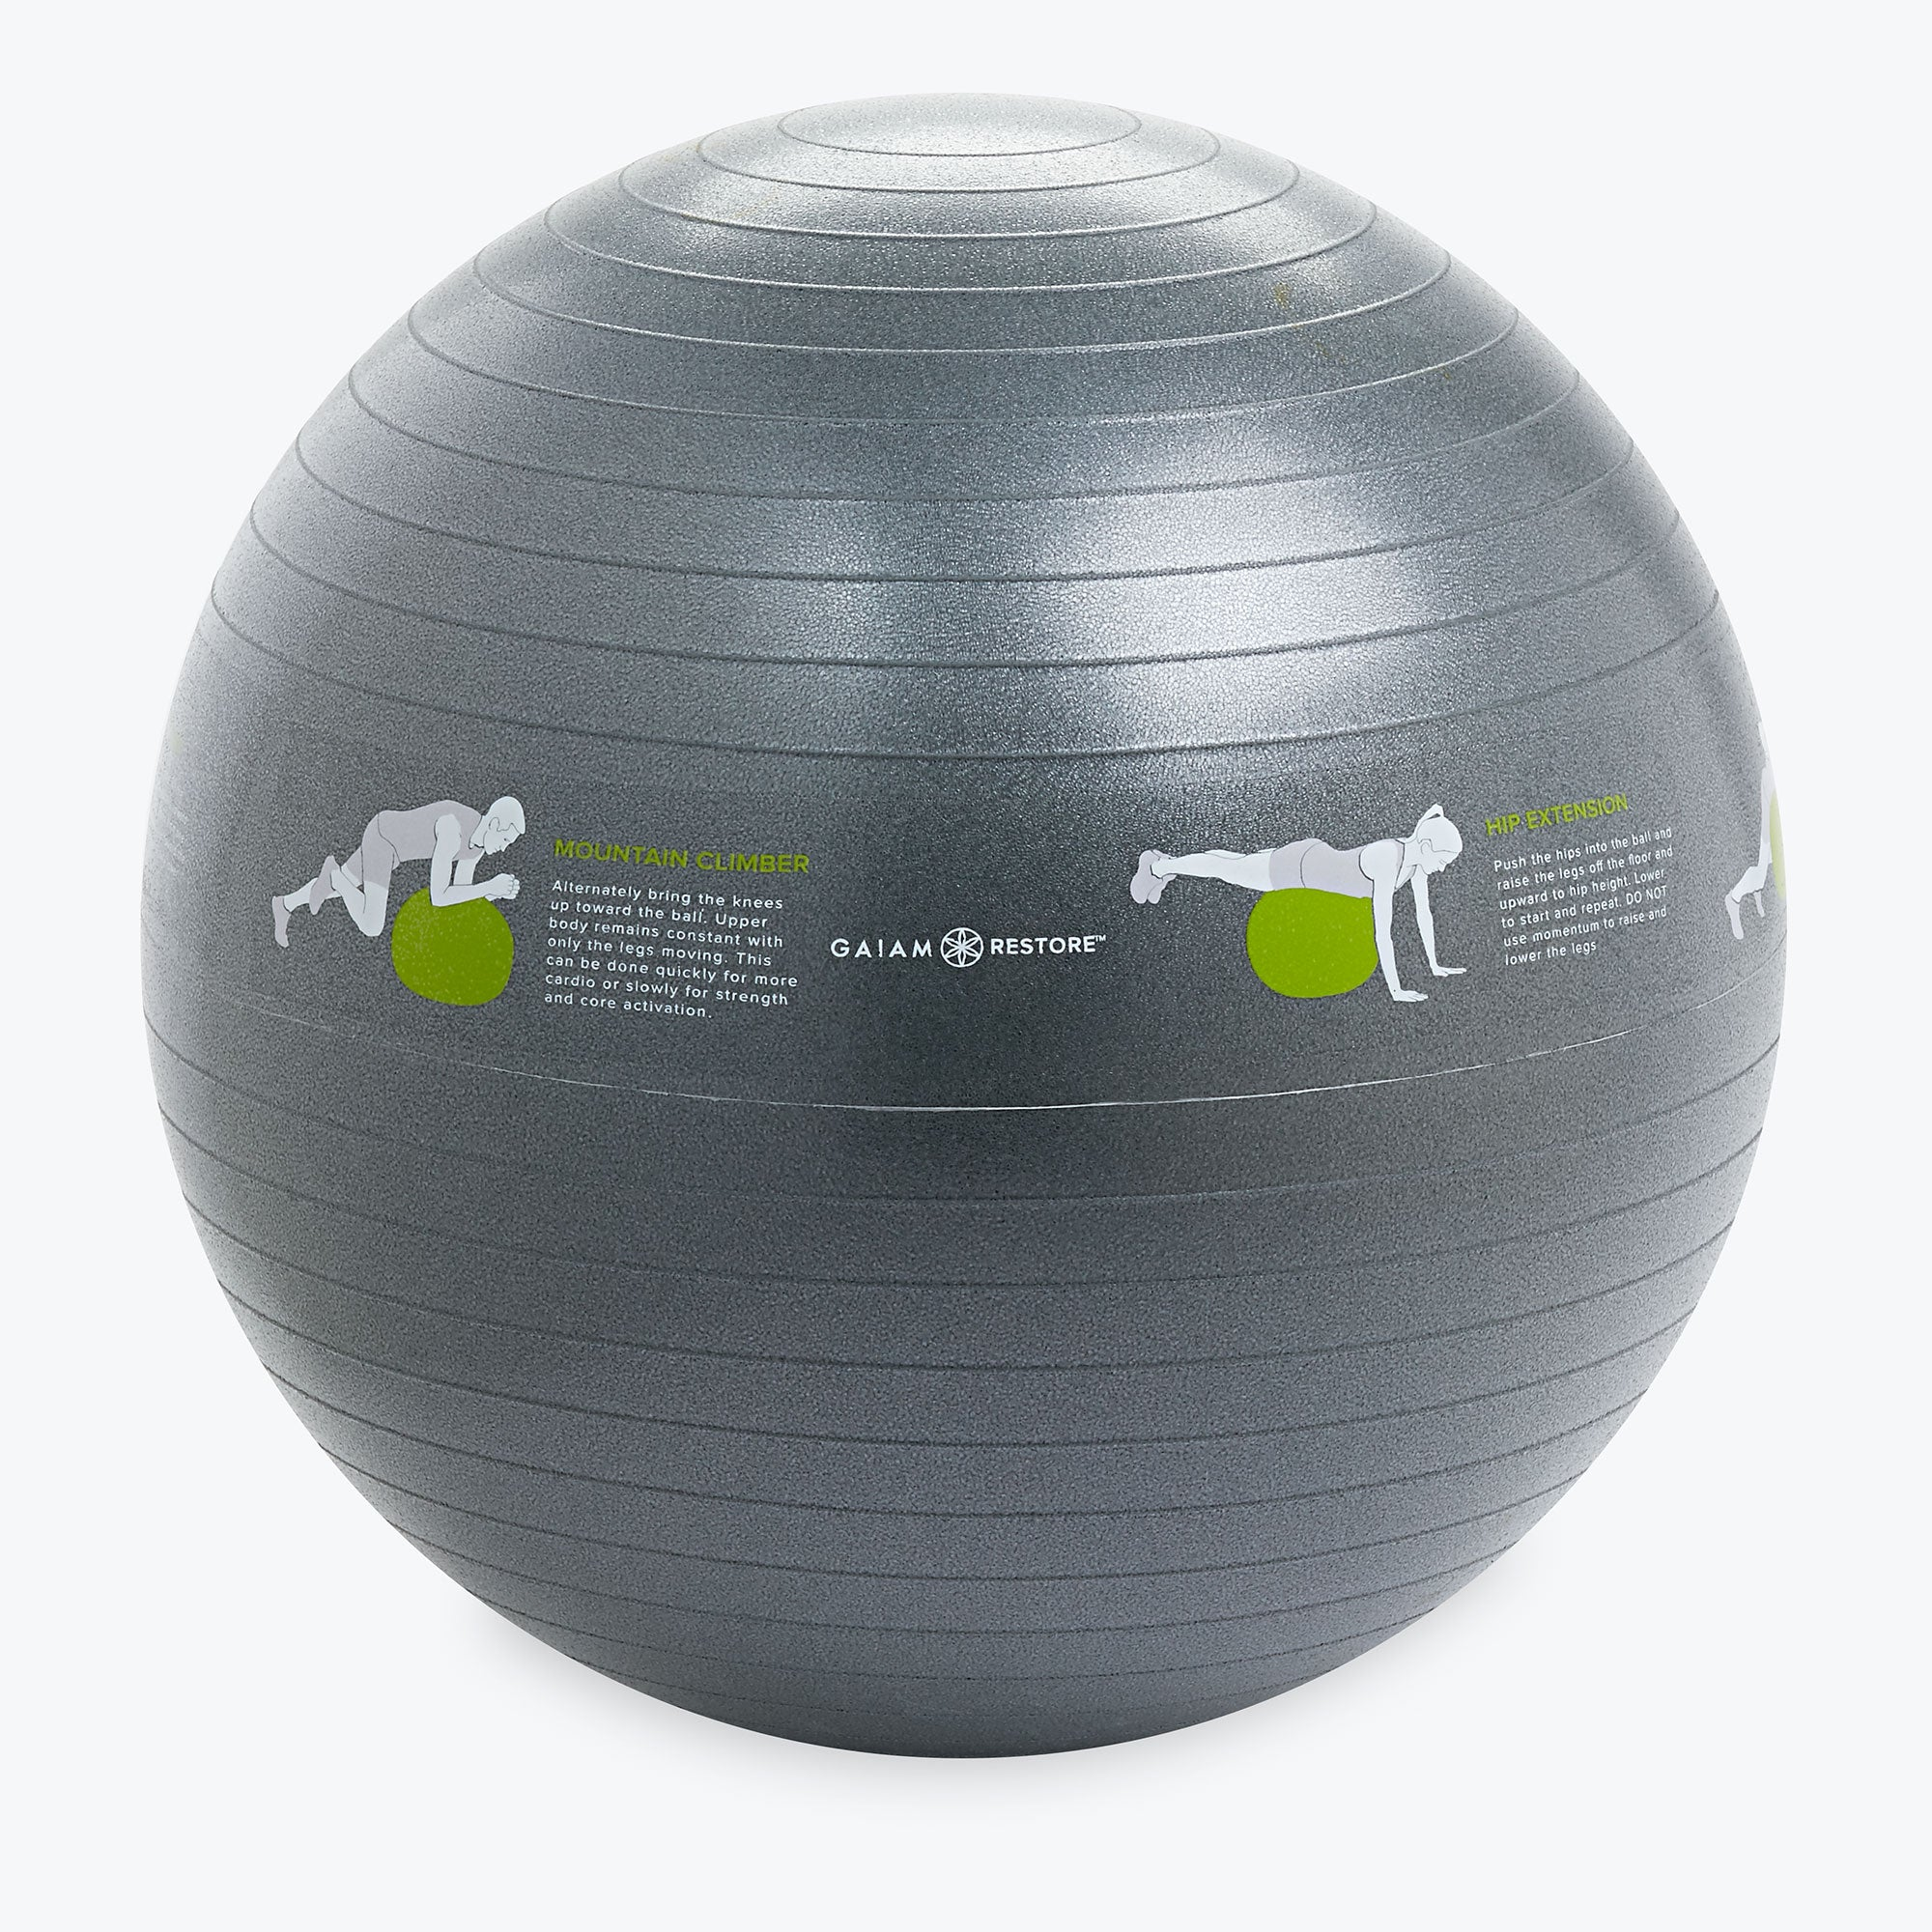 Stability Ball Manual: Restore Self-Guided Stability Ball